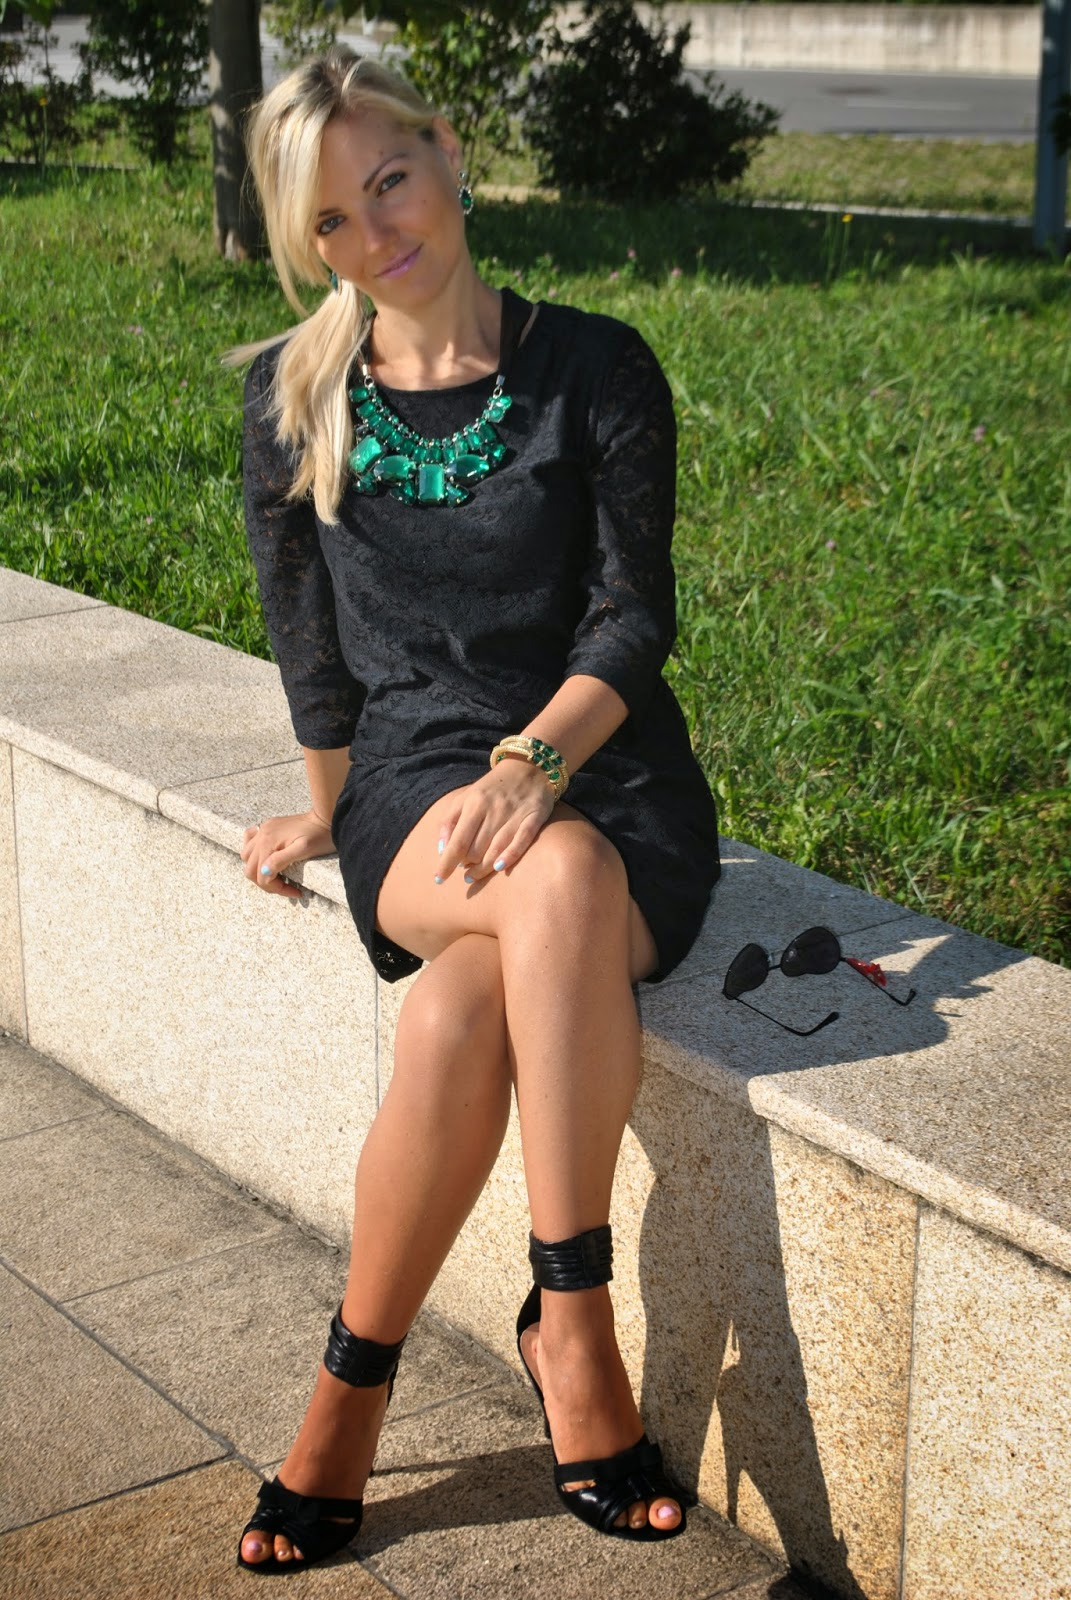 outfit abito nero in pizzo abito nero in pizzo abbinamento nero e verde smeraldo gioielli verde smeraldo abbinamento nero e verde accessori verde smeraldo majique orecchini majique smeraldo fashion blogger bionde fashion blogger italiane mariafelicia magno fashion blogger colorblock by felym outfit estate 2014 outfit estivi eleganti outfit settembre 2014